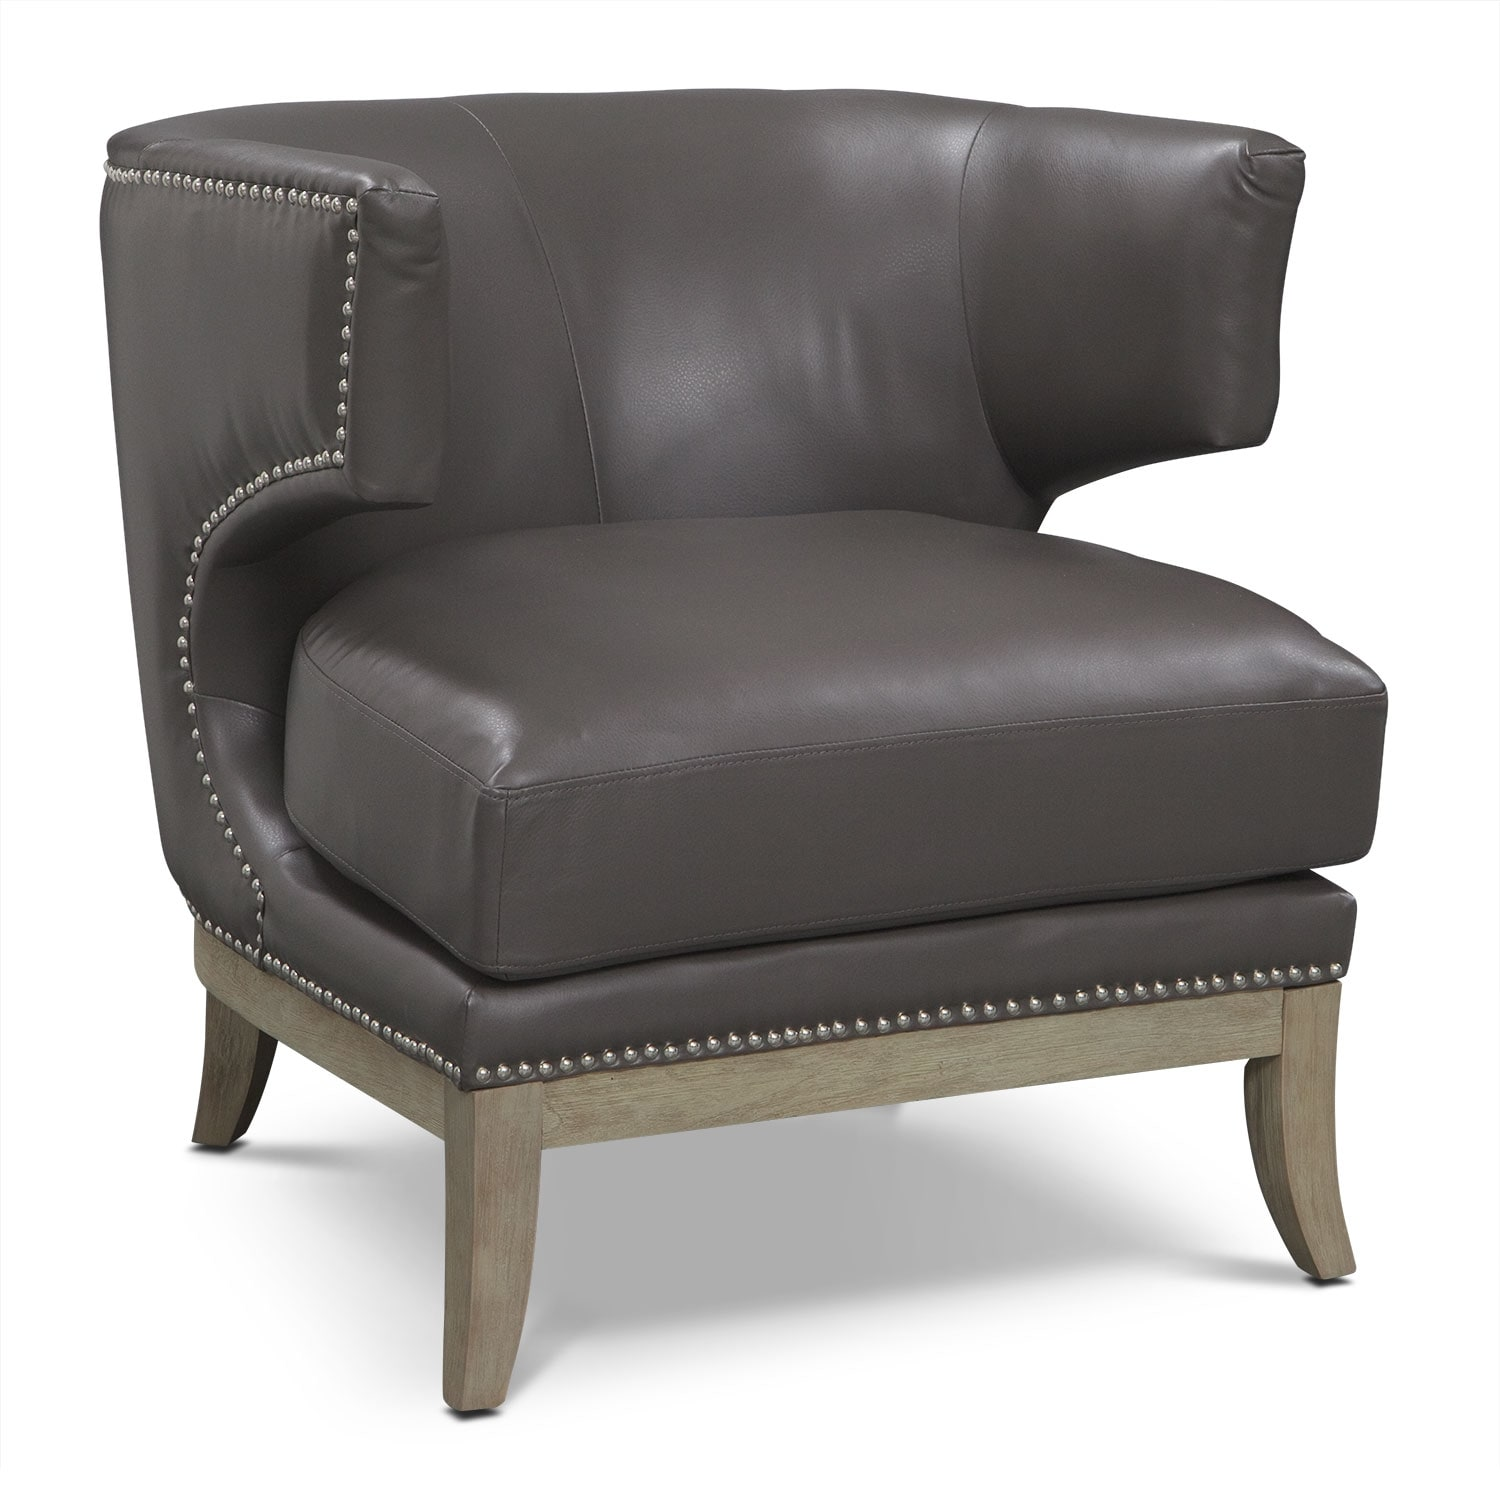 Clarise Accent Chair - Gray